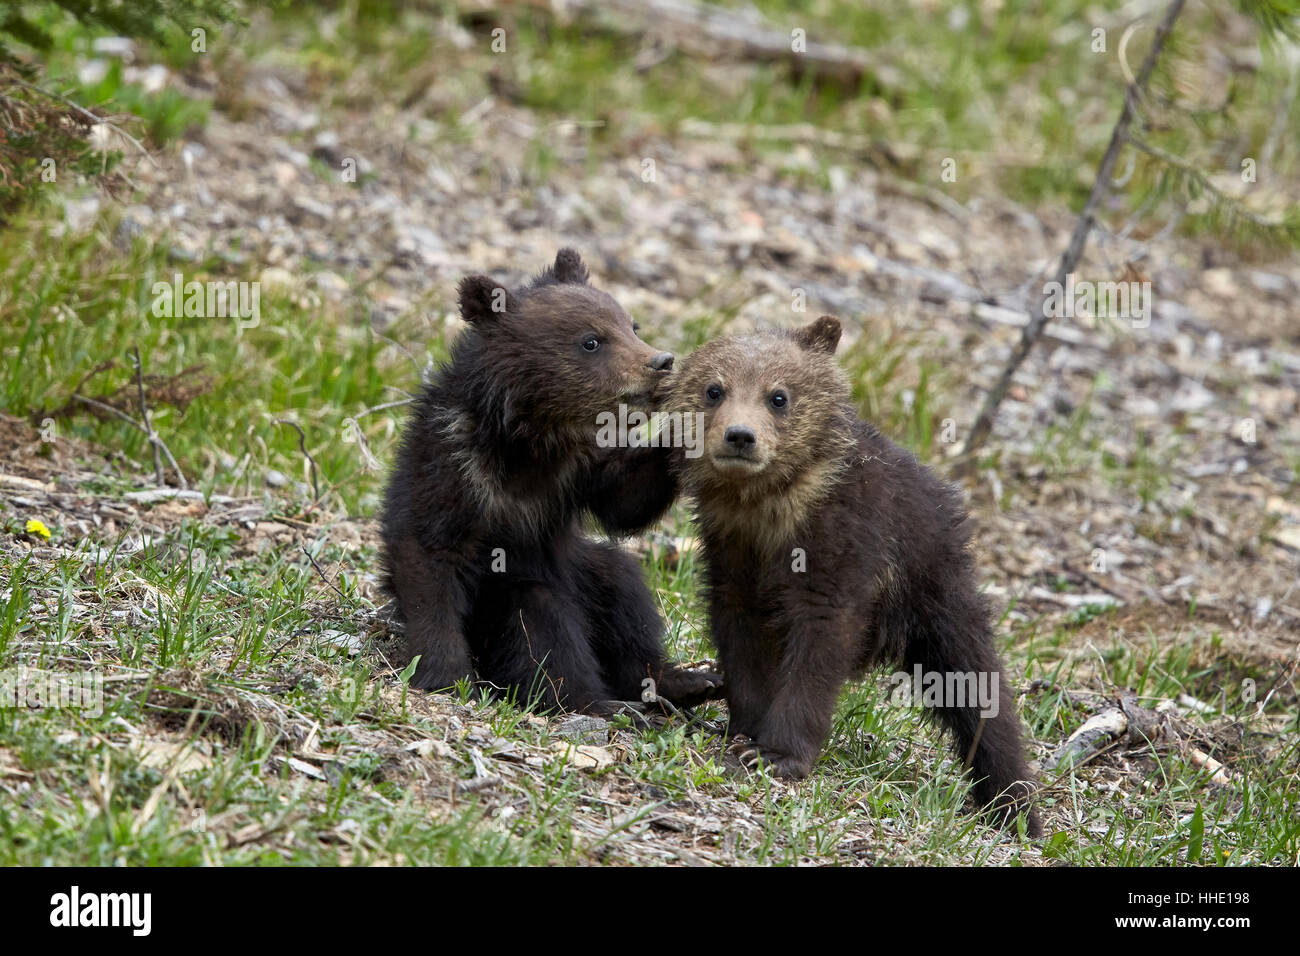 Two Grizzly Bear (Ursus arctos horribilis) cubs of the year or spring cubs playing, Yellowstone National Park, Wyoming, Stock Photo